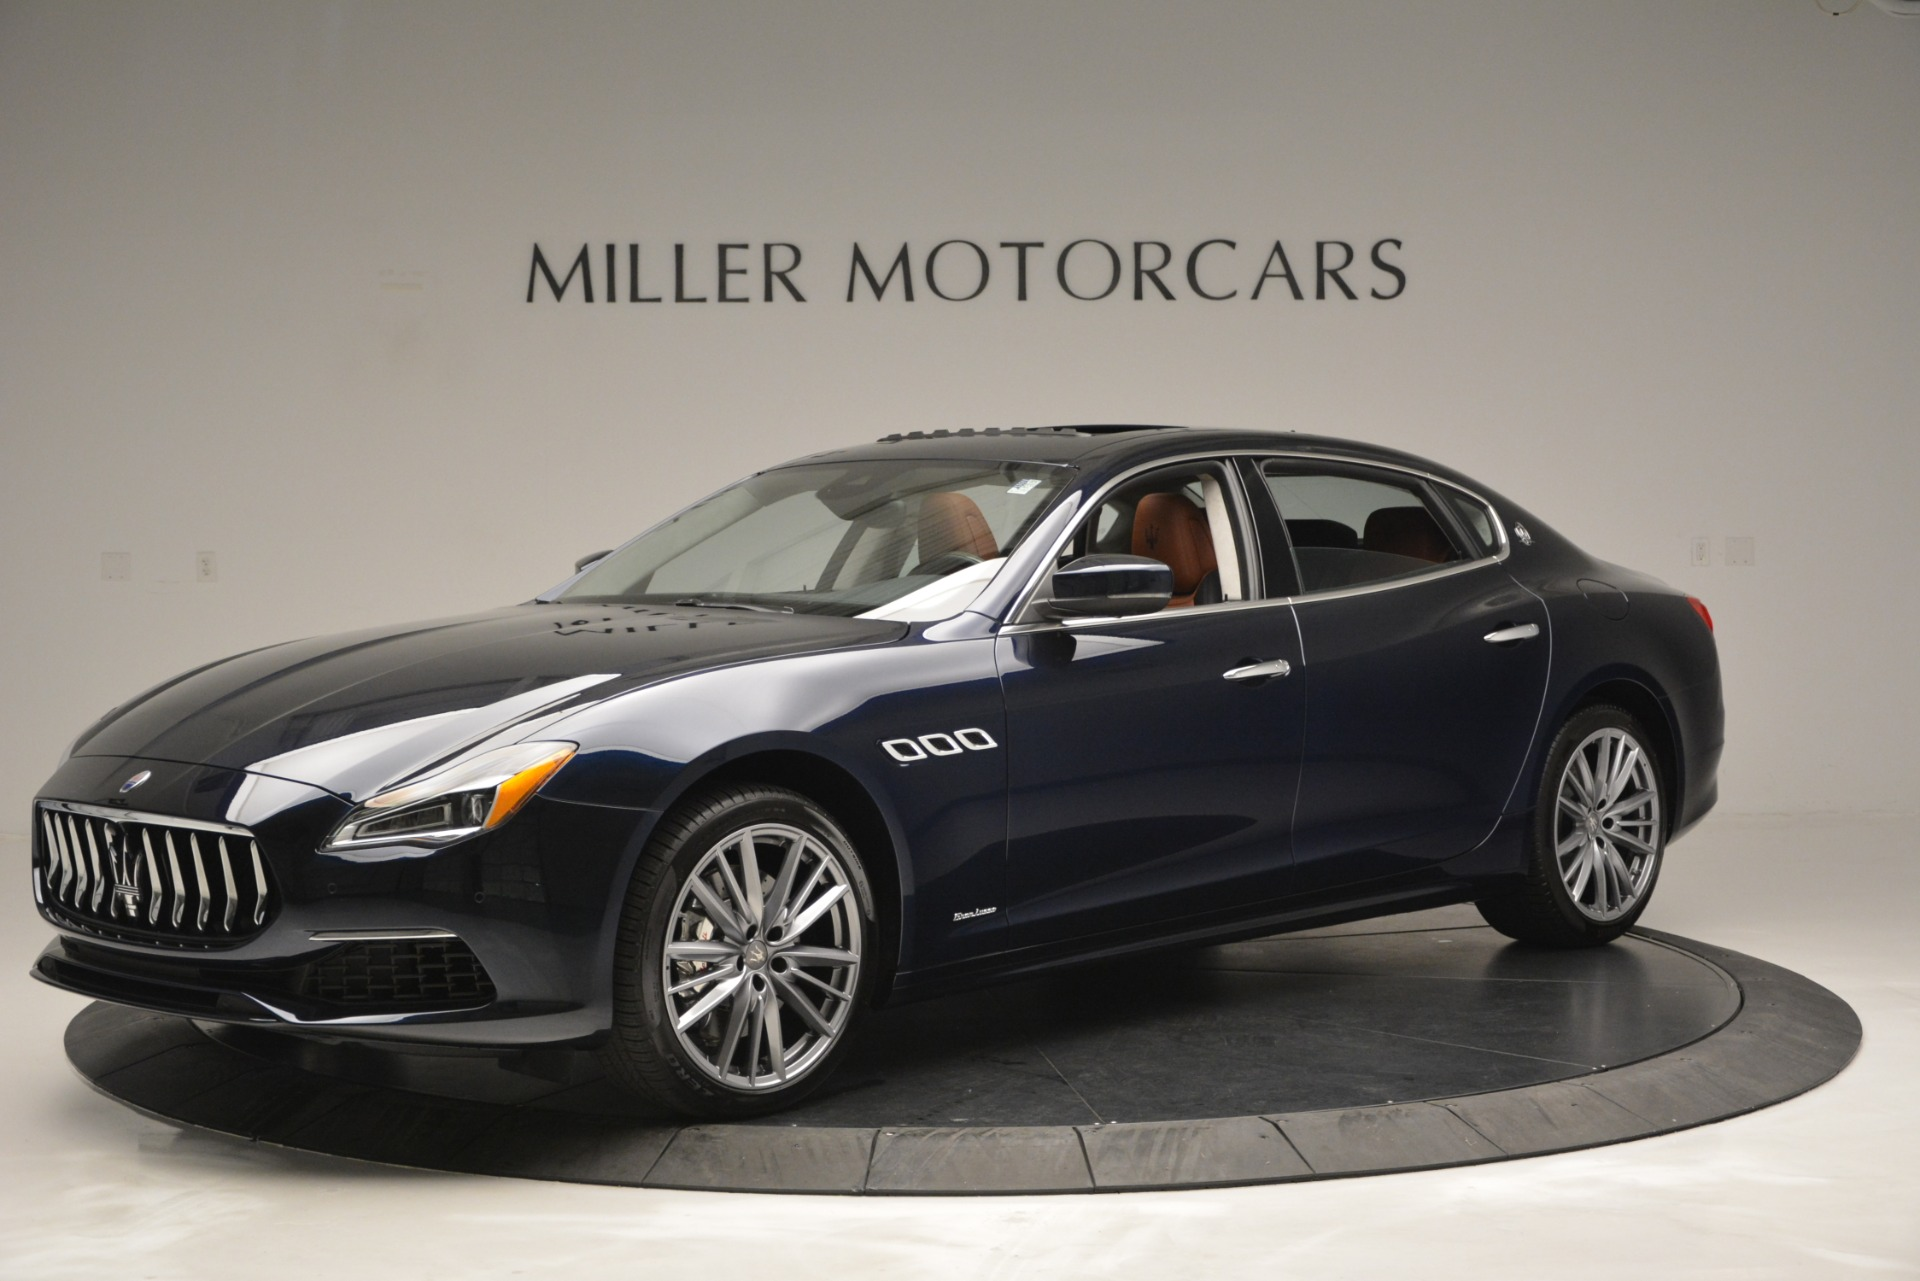 New 2019 Maserati Quattroporte S Q4 GranLusso Edizione Nobile For Sale In Greenwich, CT 2898_p2